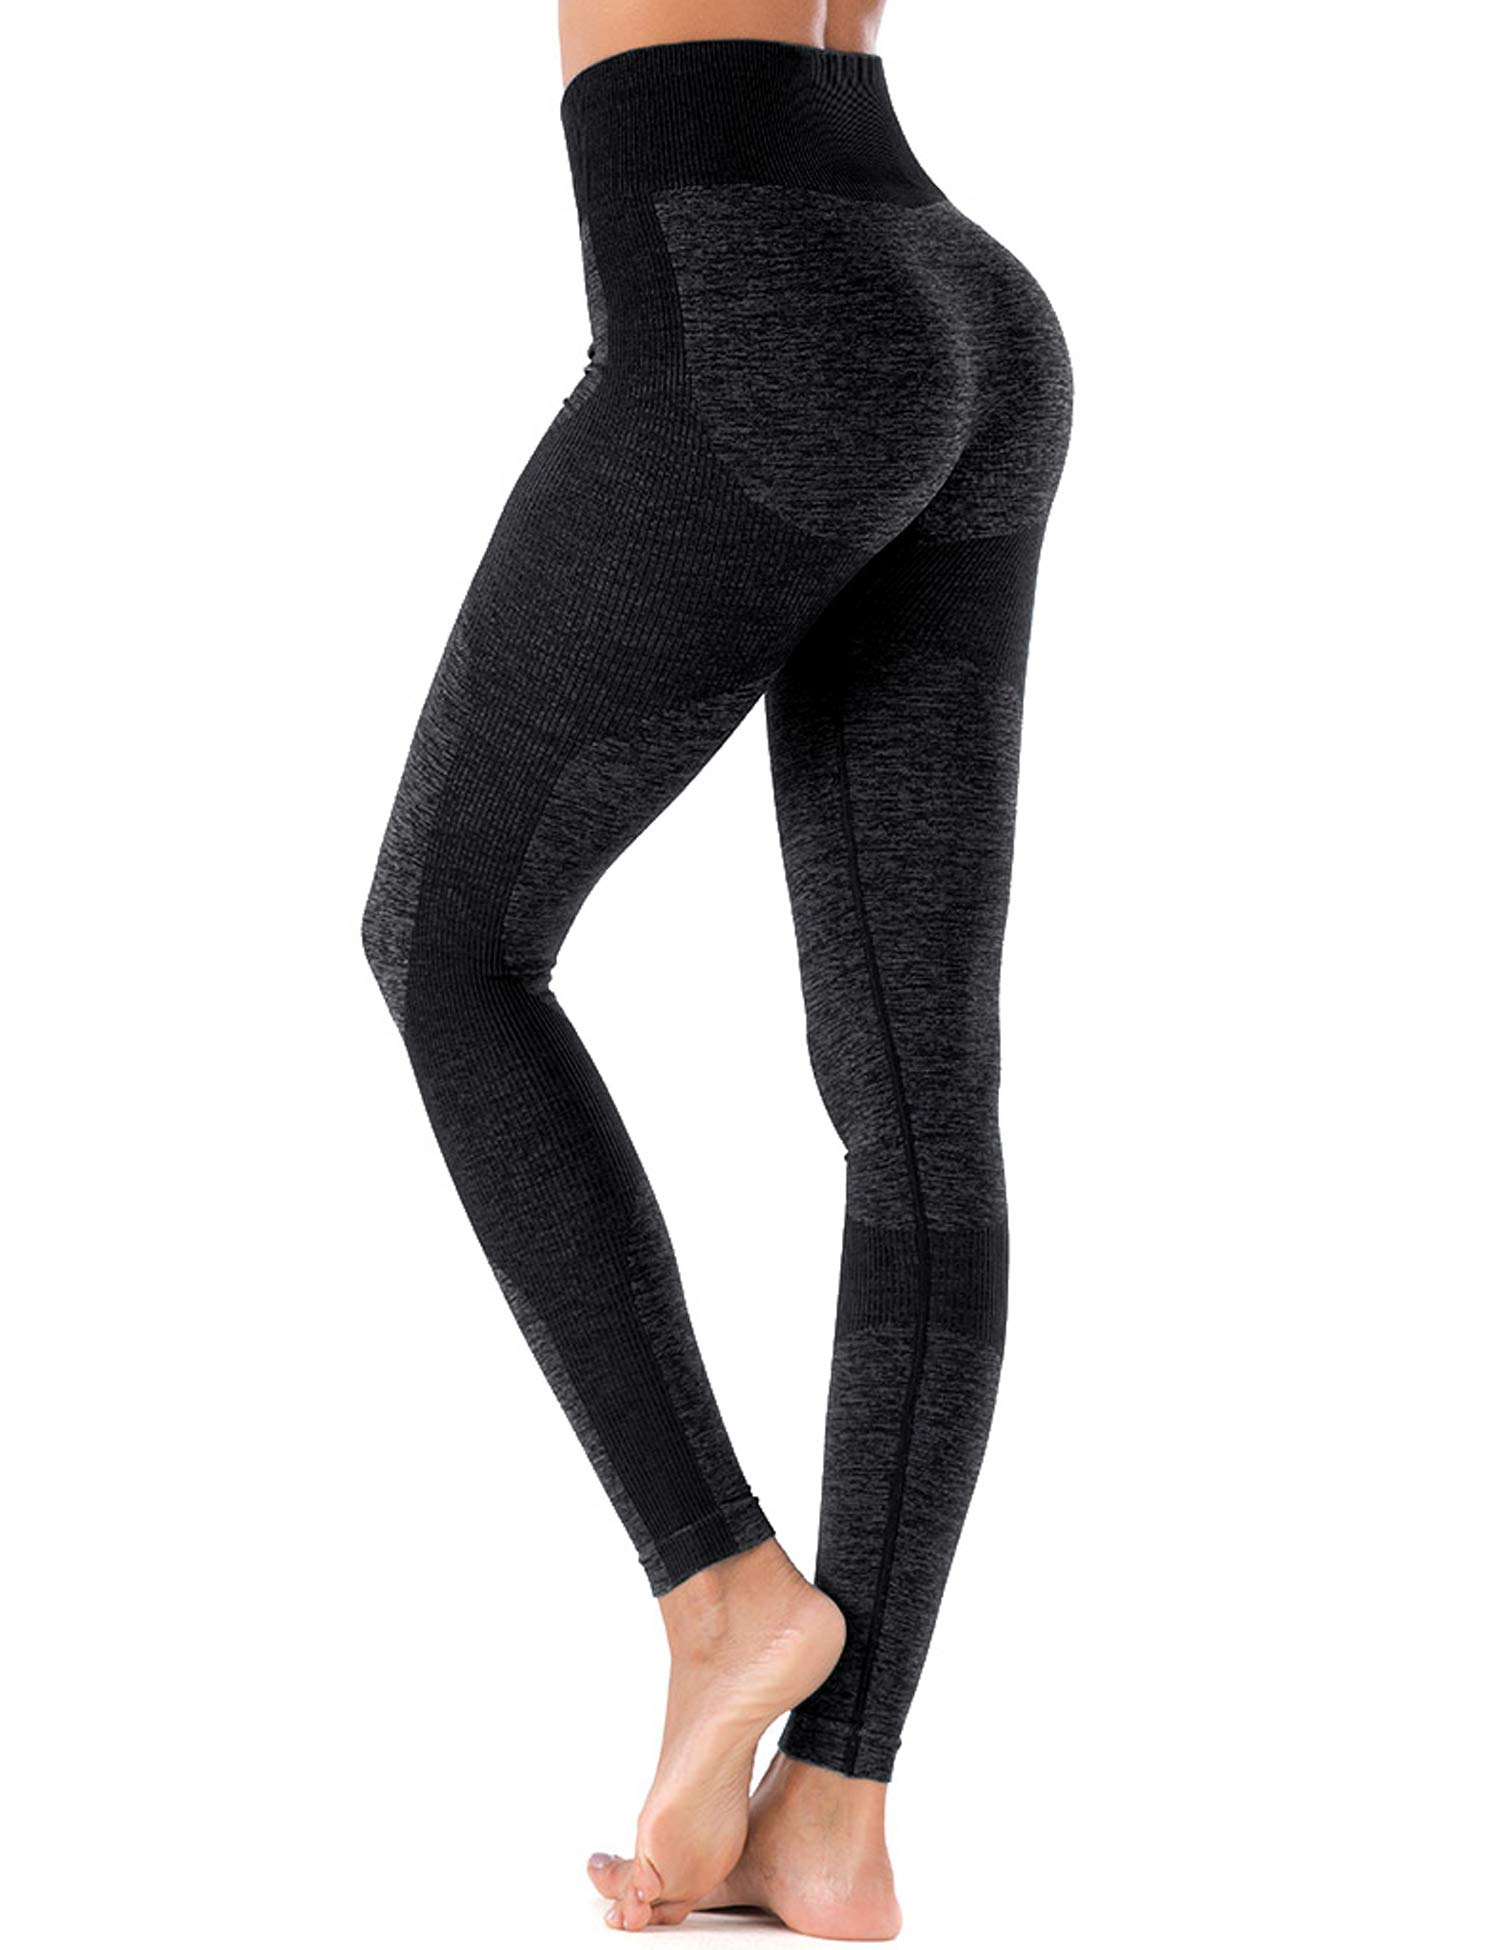 ZHENWEI Women's High Waist Workout Gym Vital Seamless Leggings Yoga Pants Black M by ZHENWEI